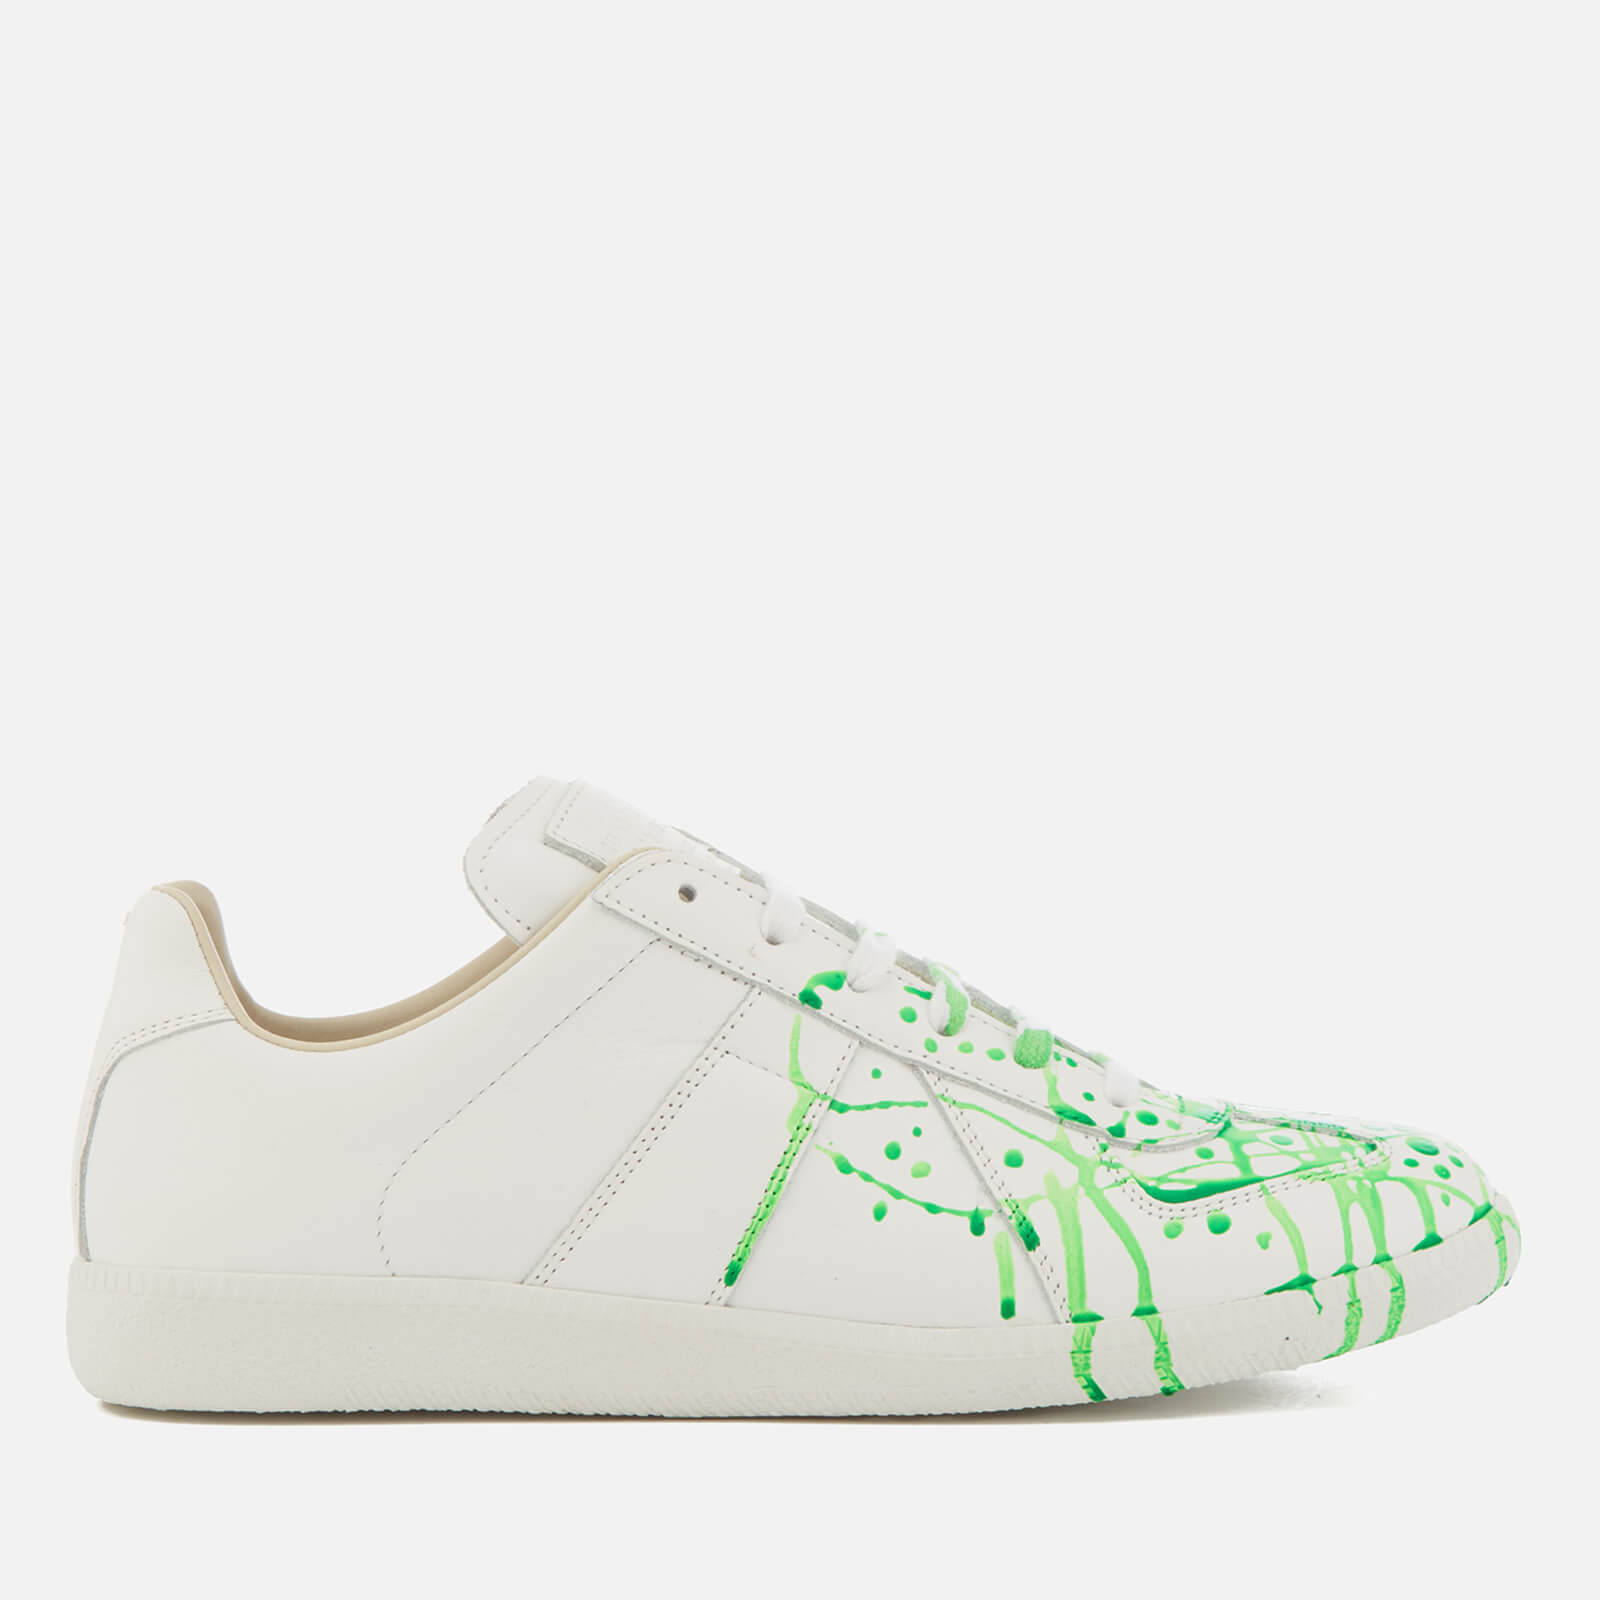 0a6c1acf Maison Margiela Men's Paint Splash Replica Sneakers - White/Green Fluo  Painter/White Sole - Free UK Delivery over £50